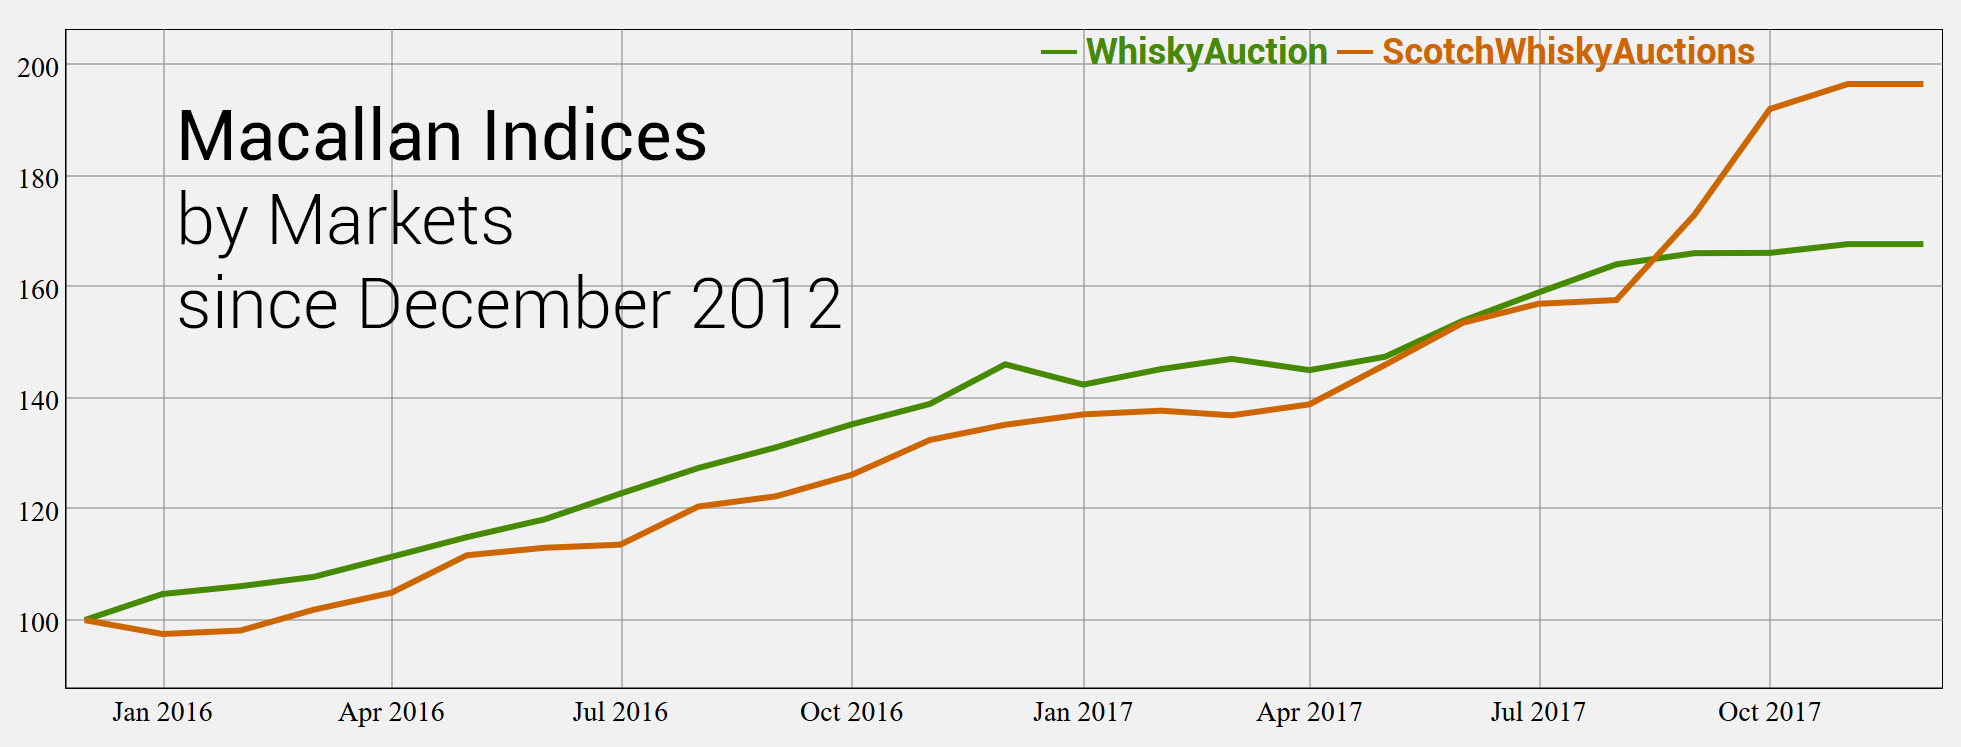 Whiskystats Macallan Index by Markets November 2017